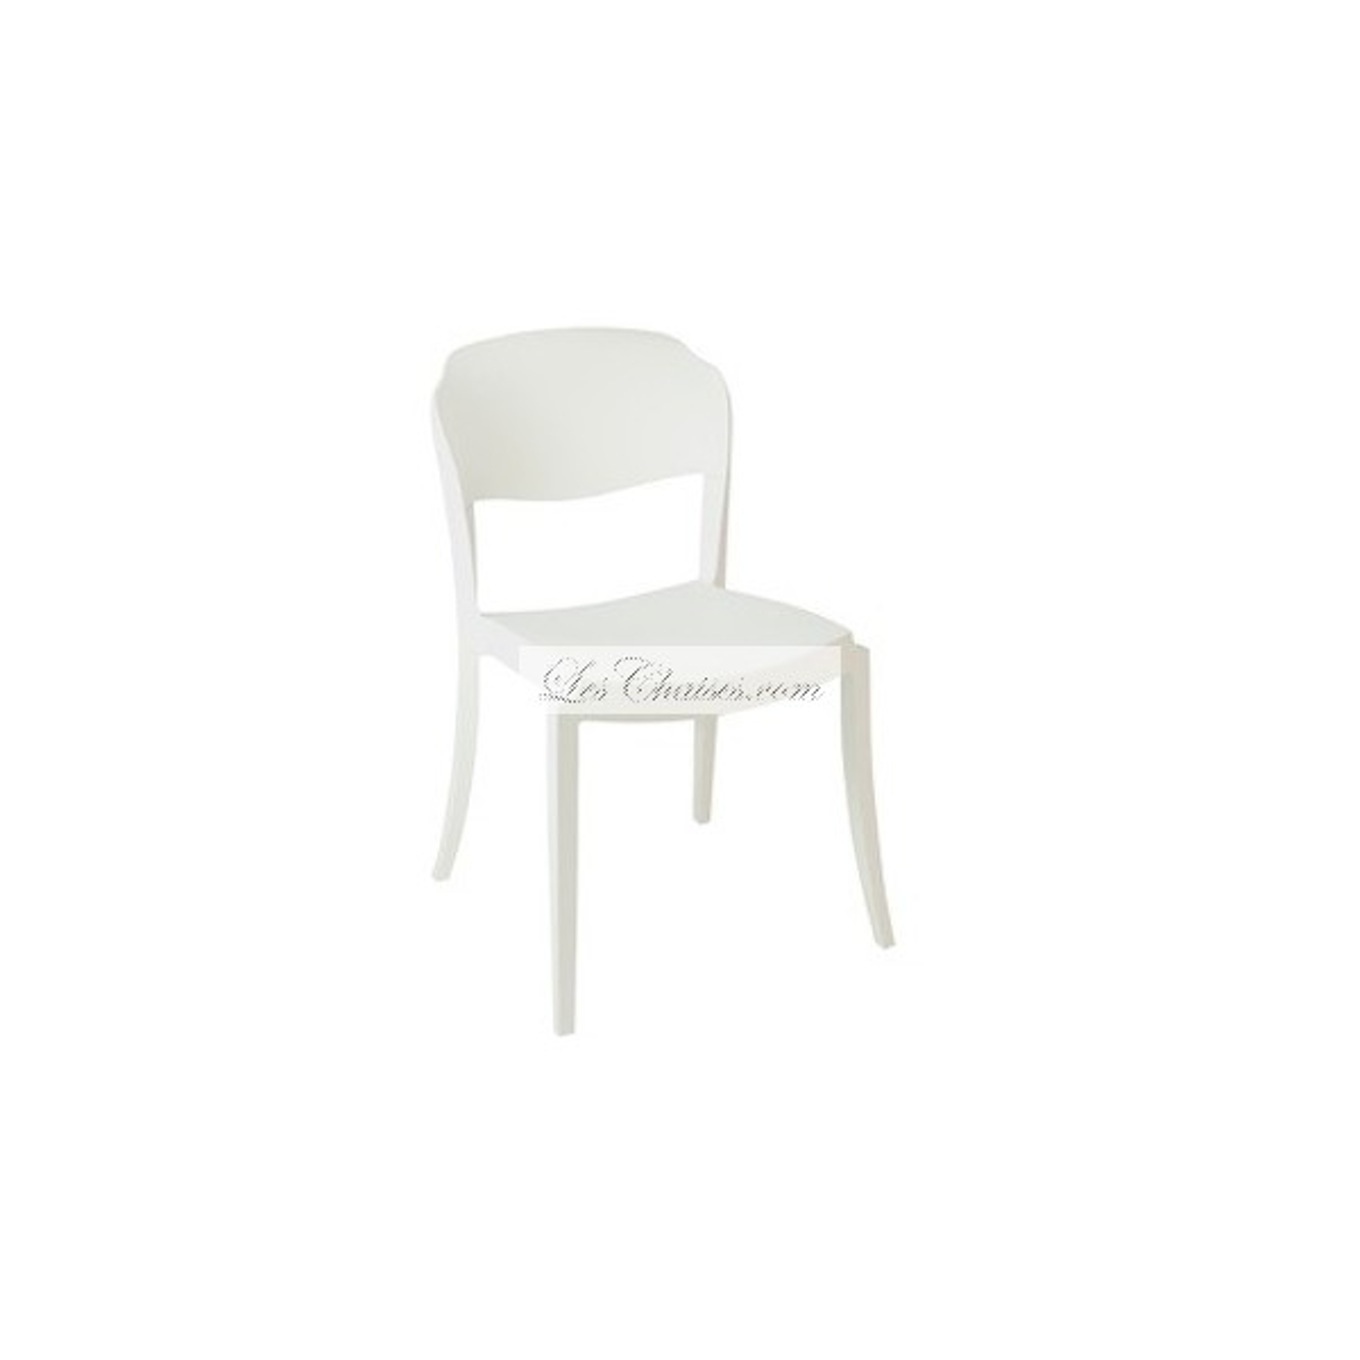 Chaises Masters Pas Cher Chaise Kartell Pas Cher Simple Chaise Masters Kartell R